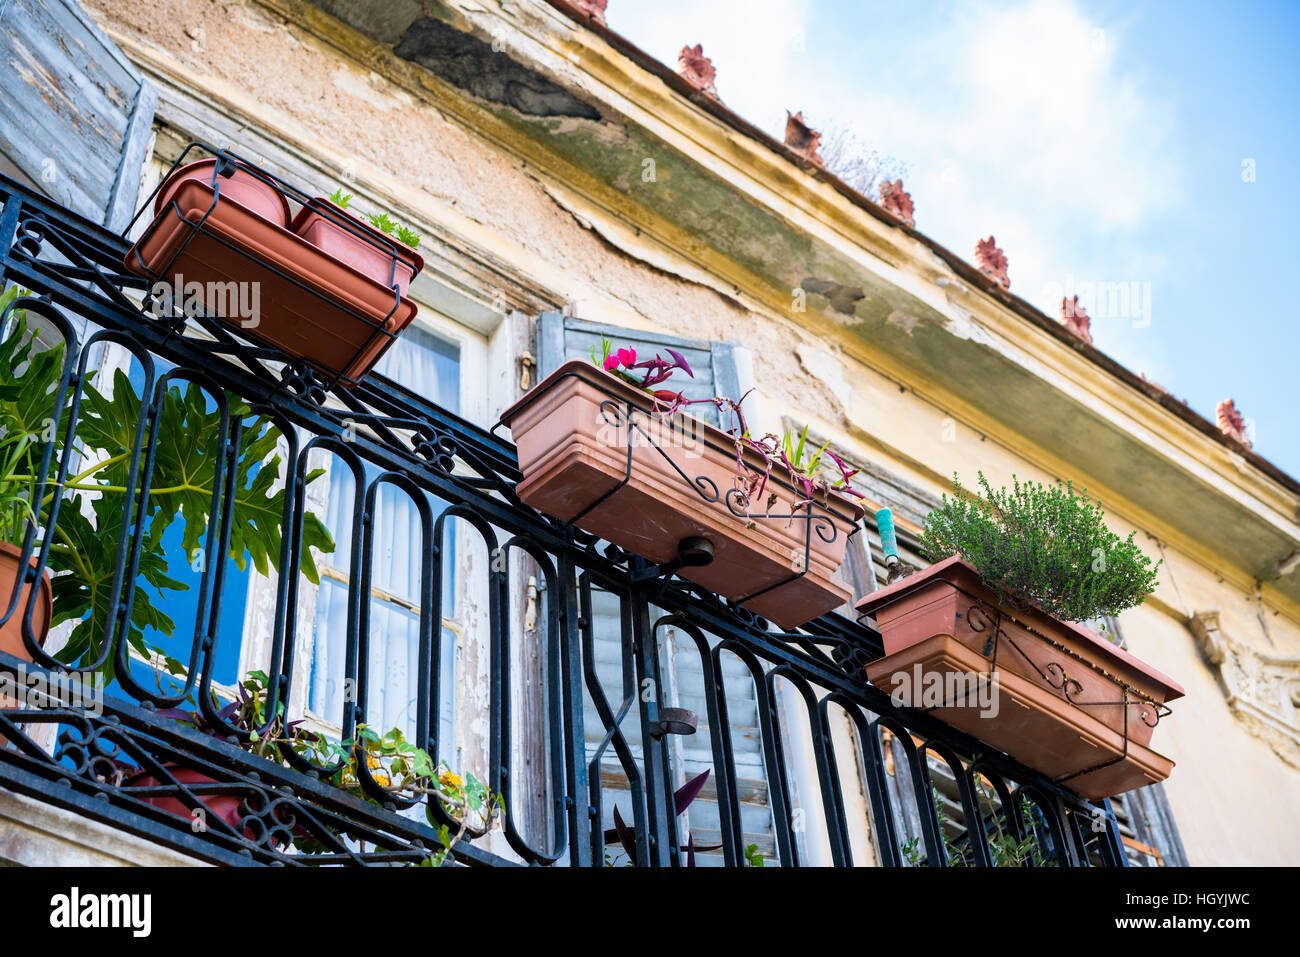 Traditional balcony-garden of an old house in Anafiotika, Plaka, Athens. - Stock Image